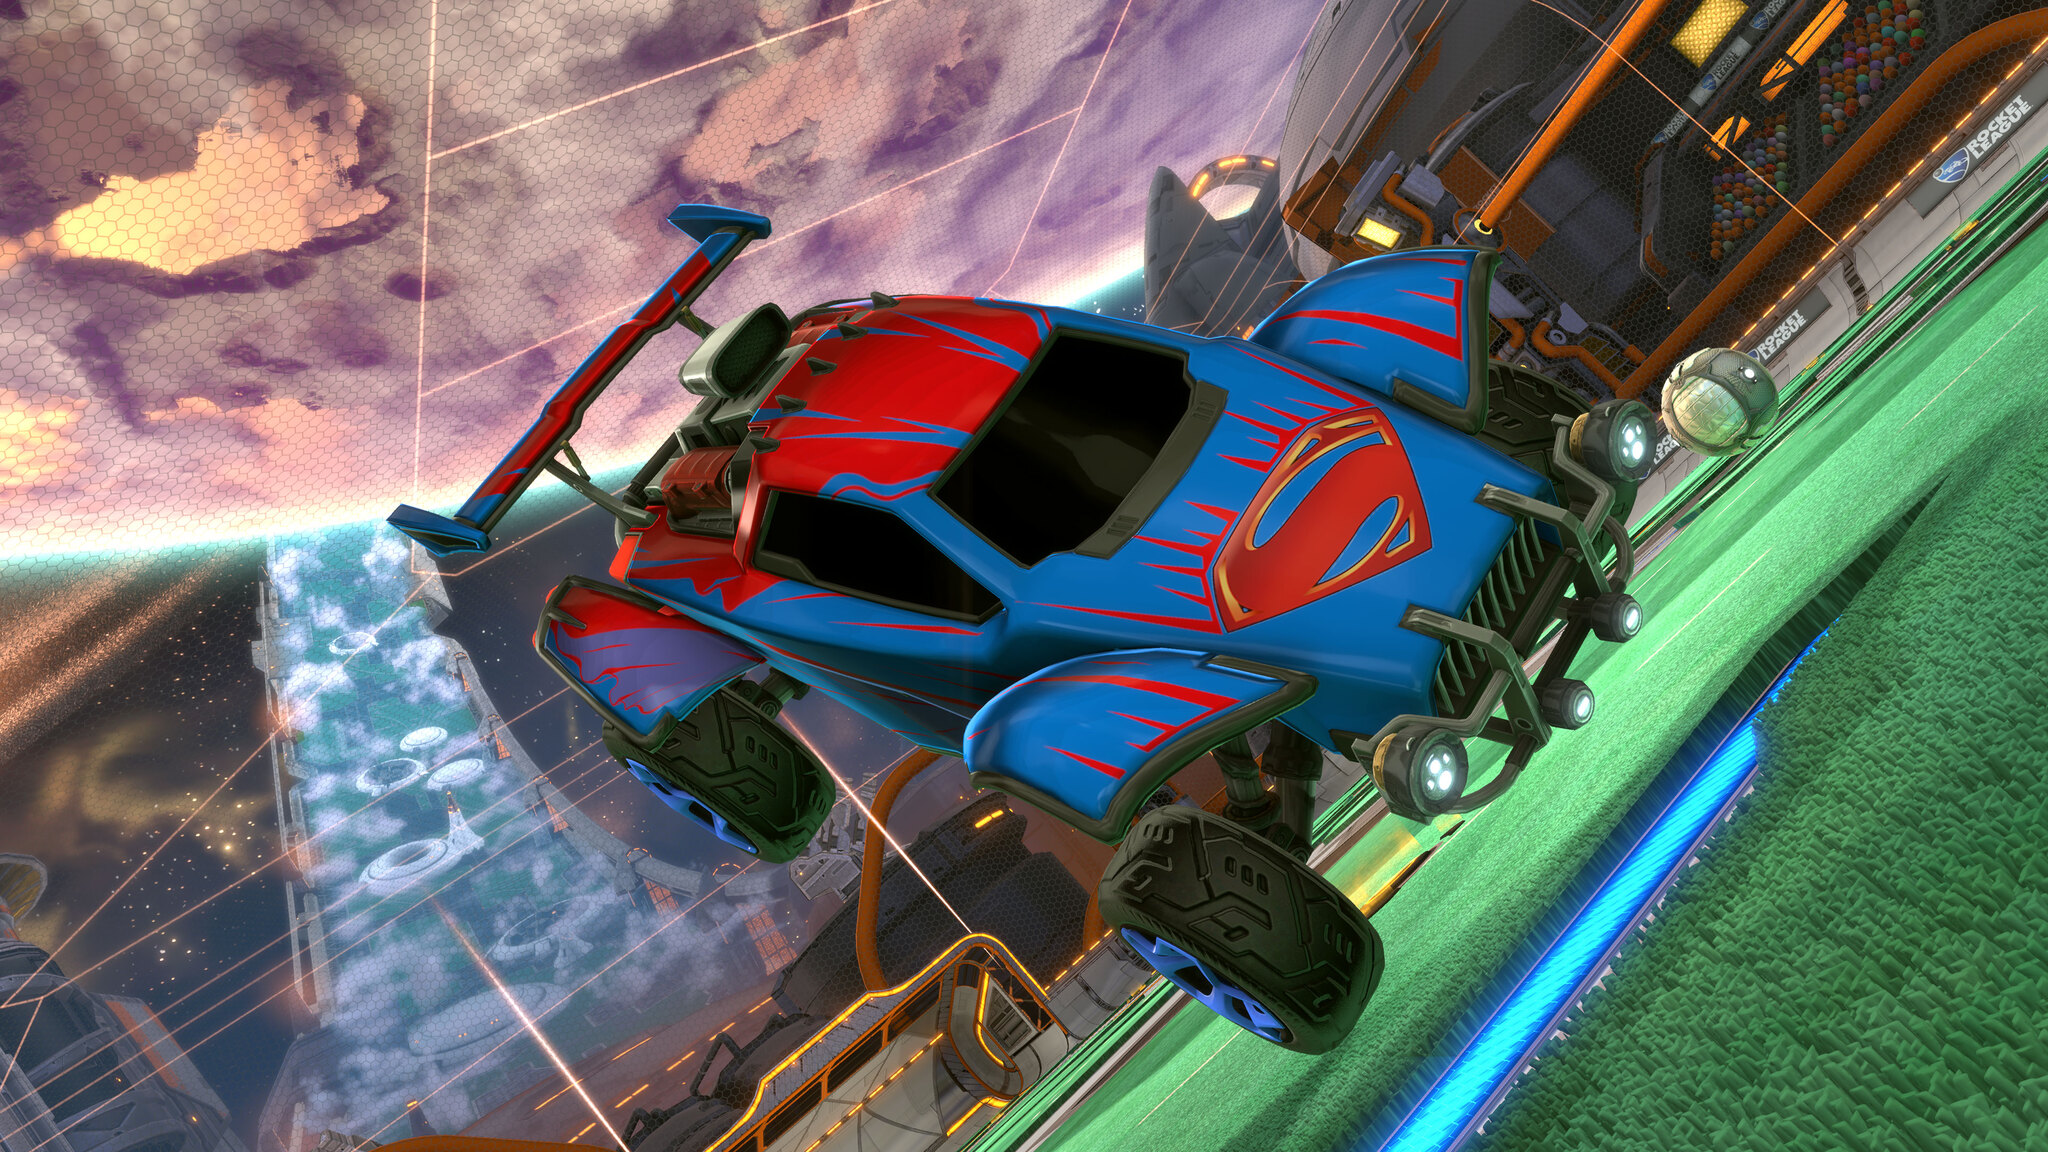 superman-rocket-league-dlc-4k-s2.jpg